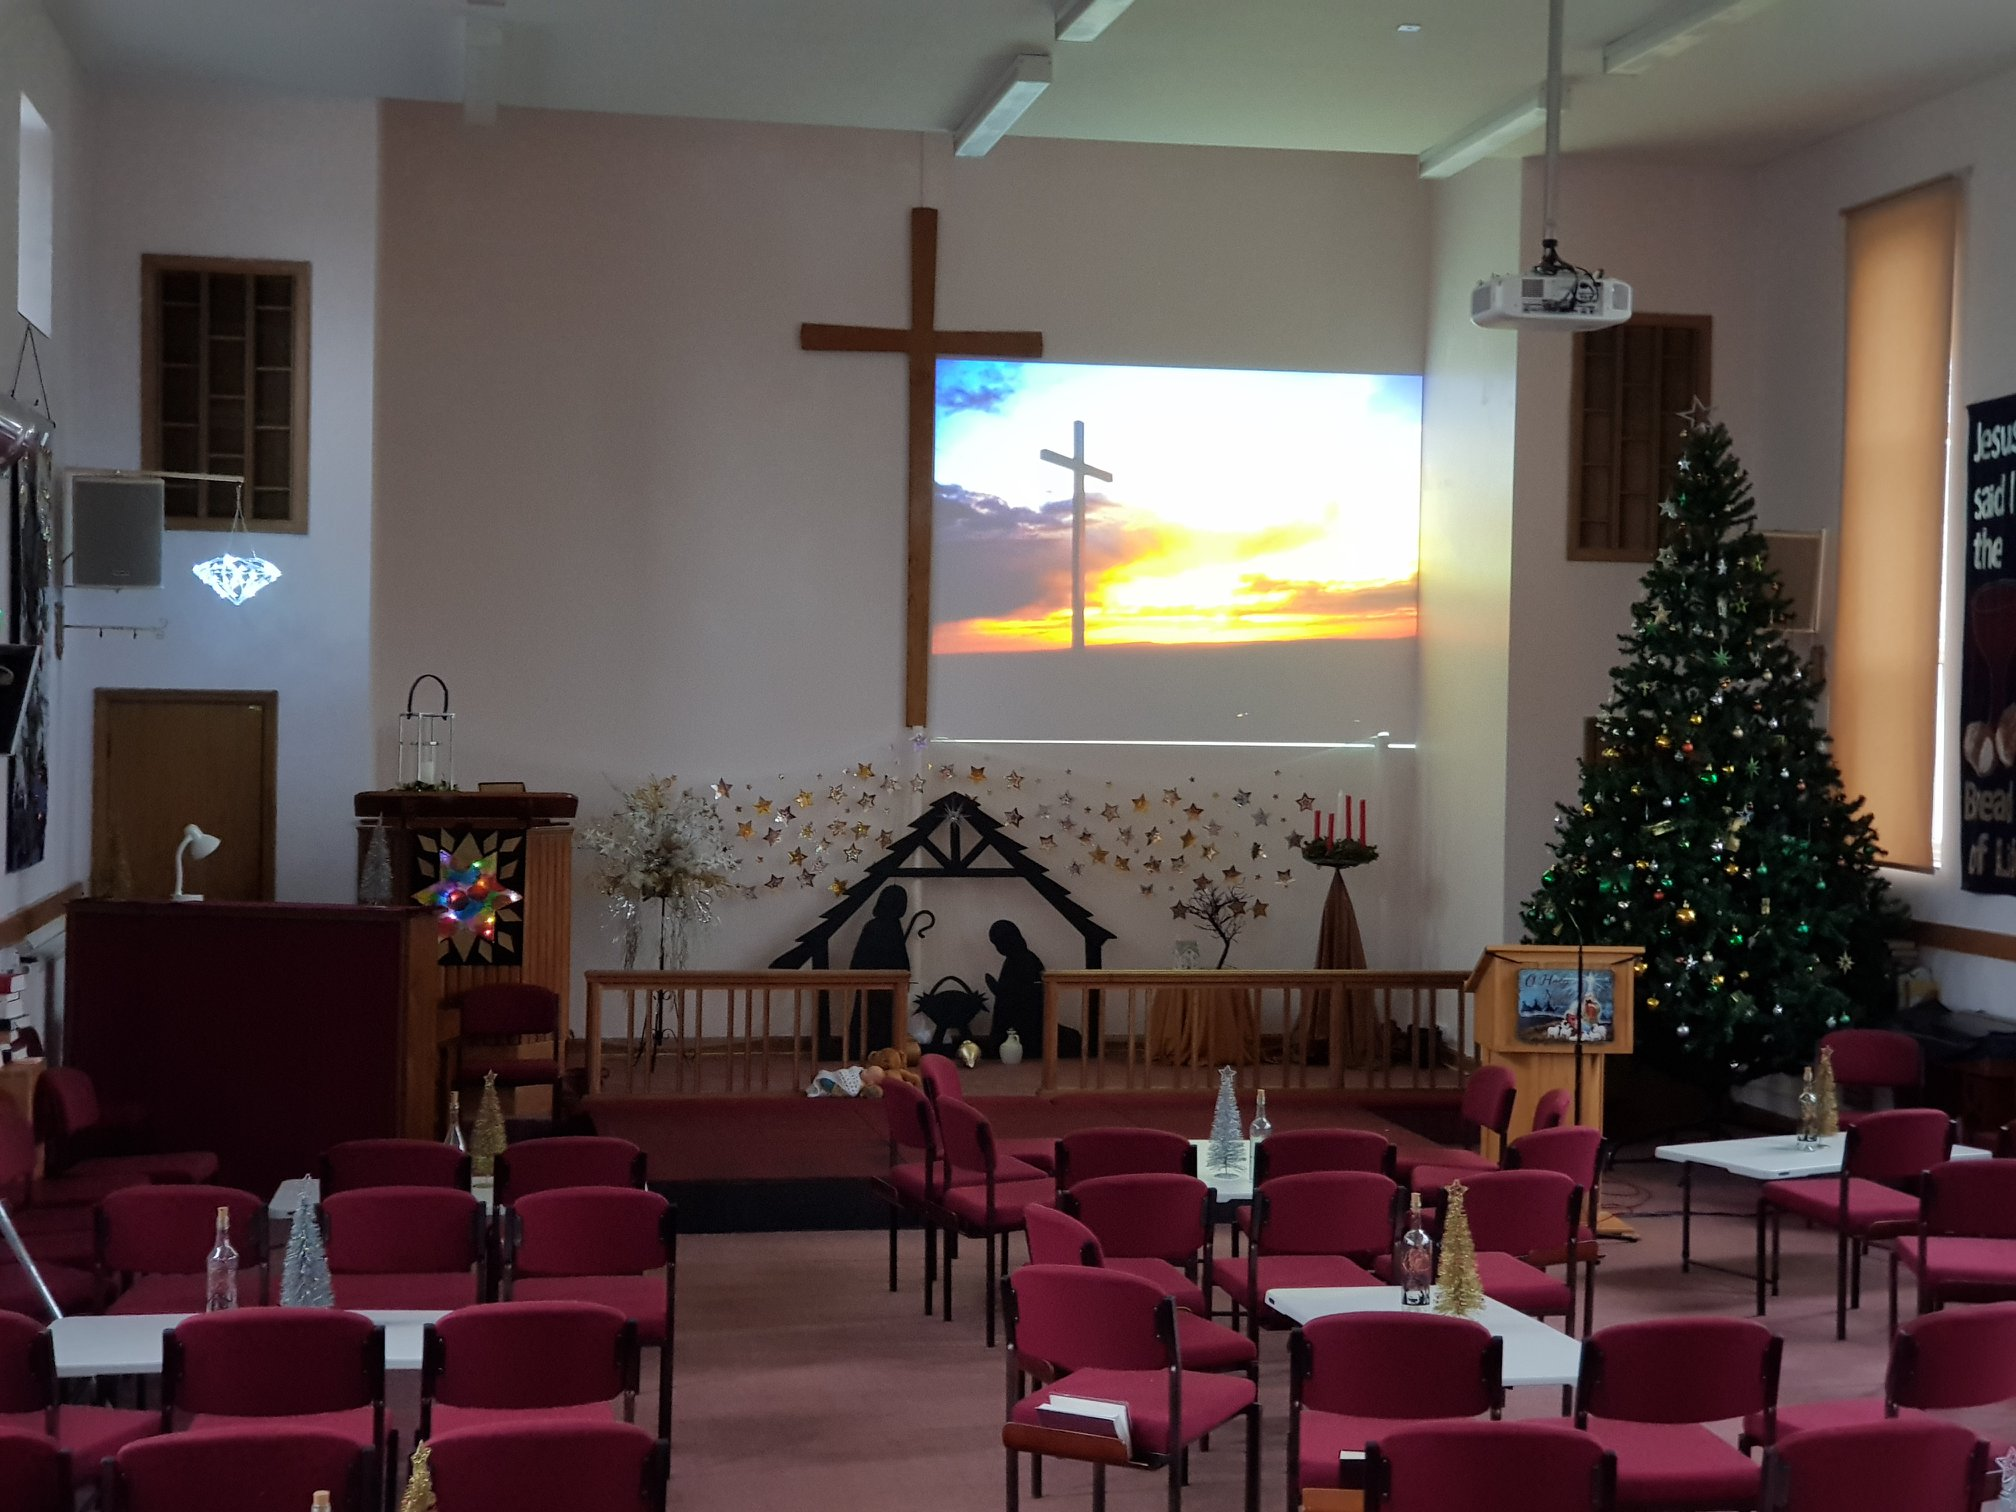 Gallery Sprowston Methodist Church